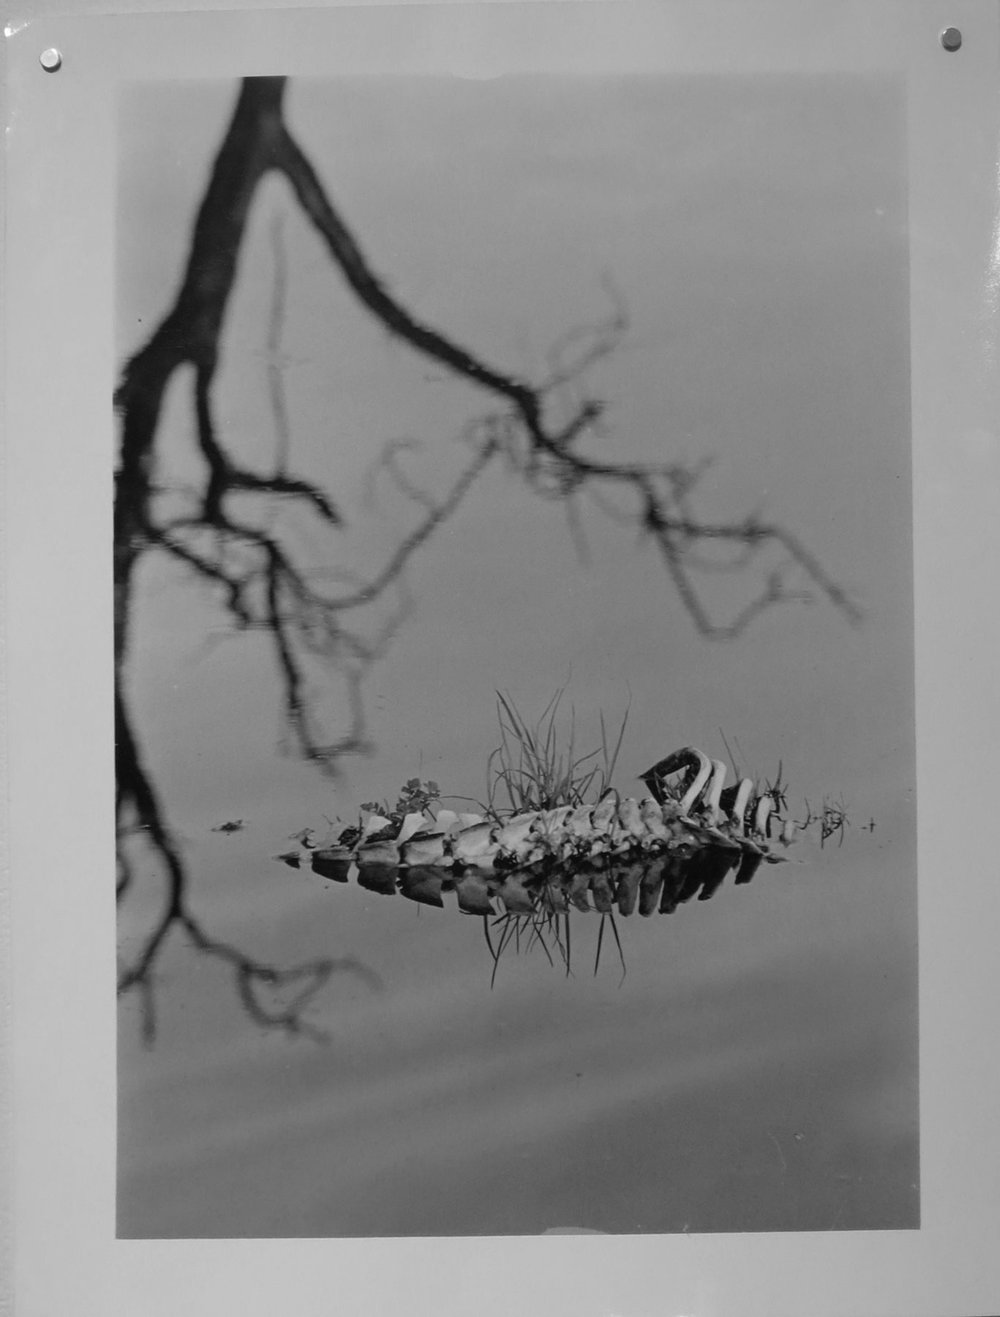 53. Richard Woldendorp, 'Flooded Paddock near Swan River, Perth WA', BW16, taken in 1959, printed in 2012